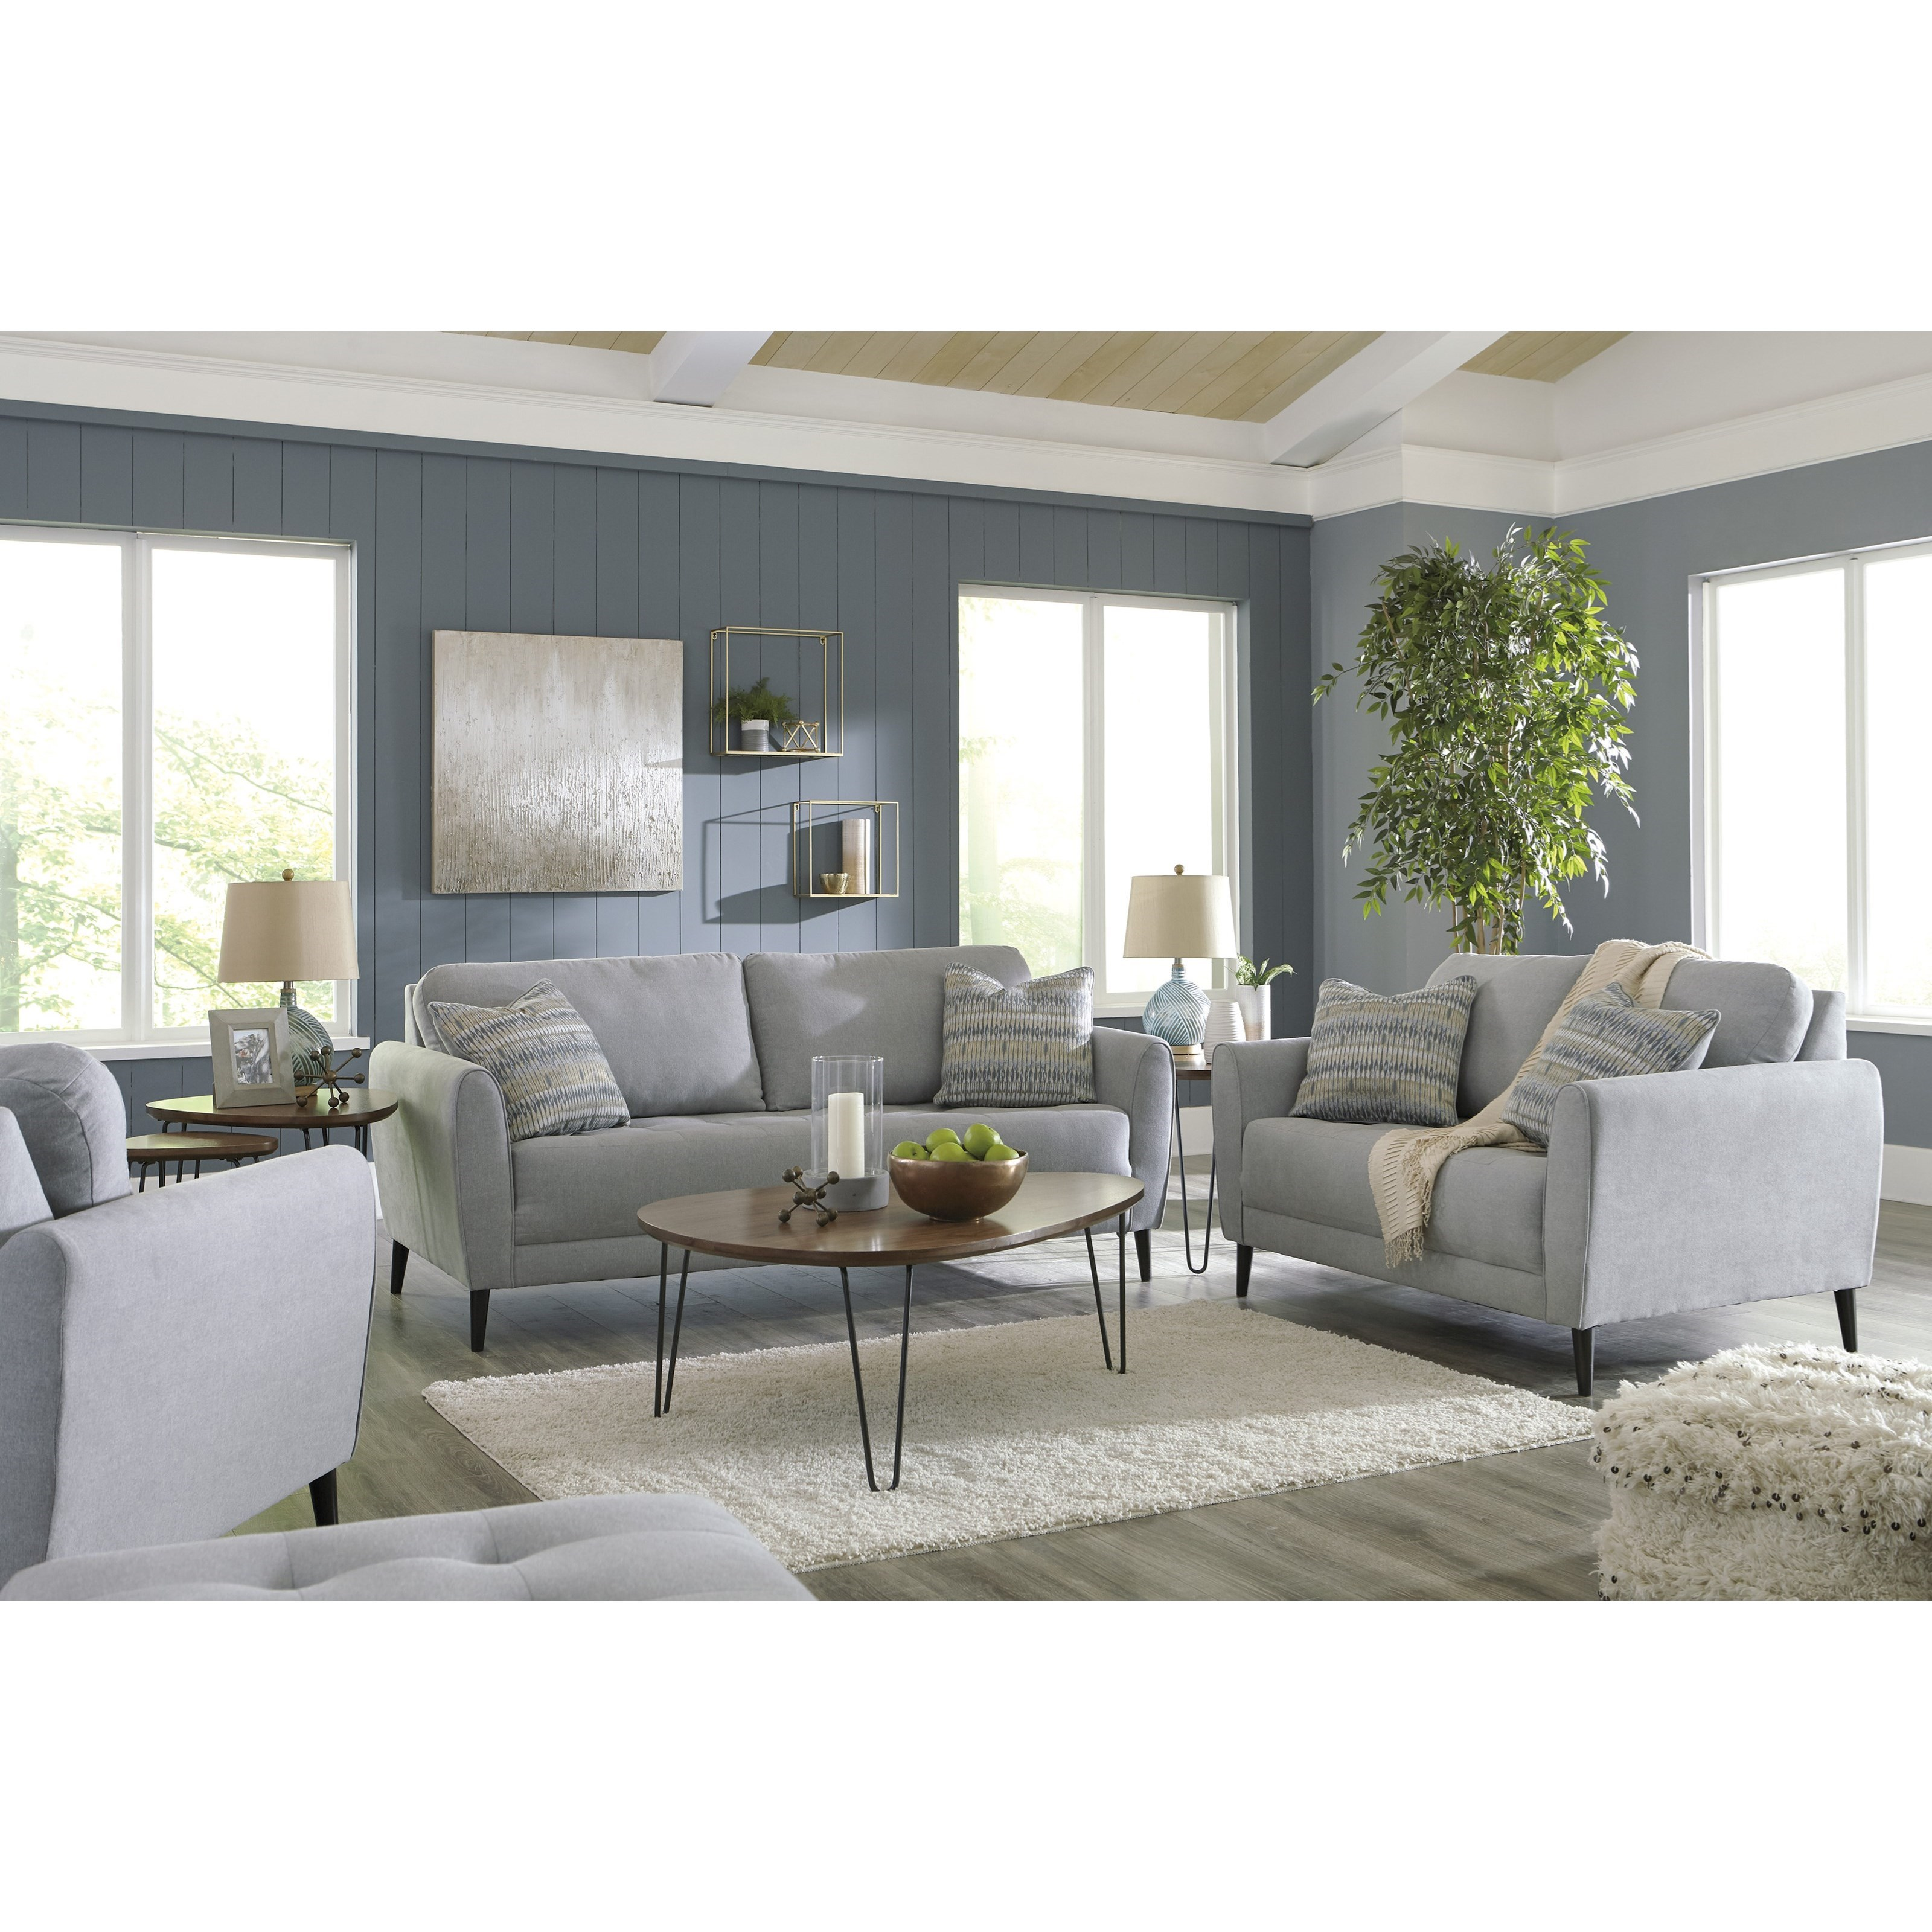 Cardello Living Room Group by Signature Design by Ashley at Standard Furniture